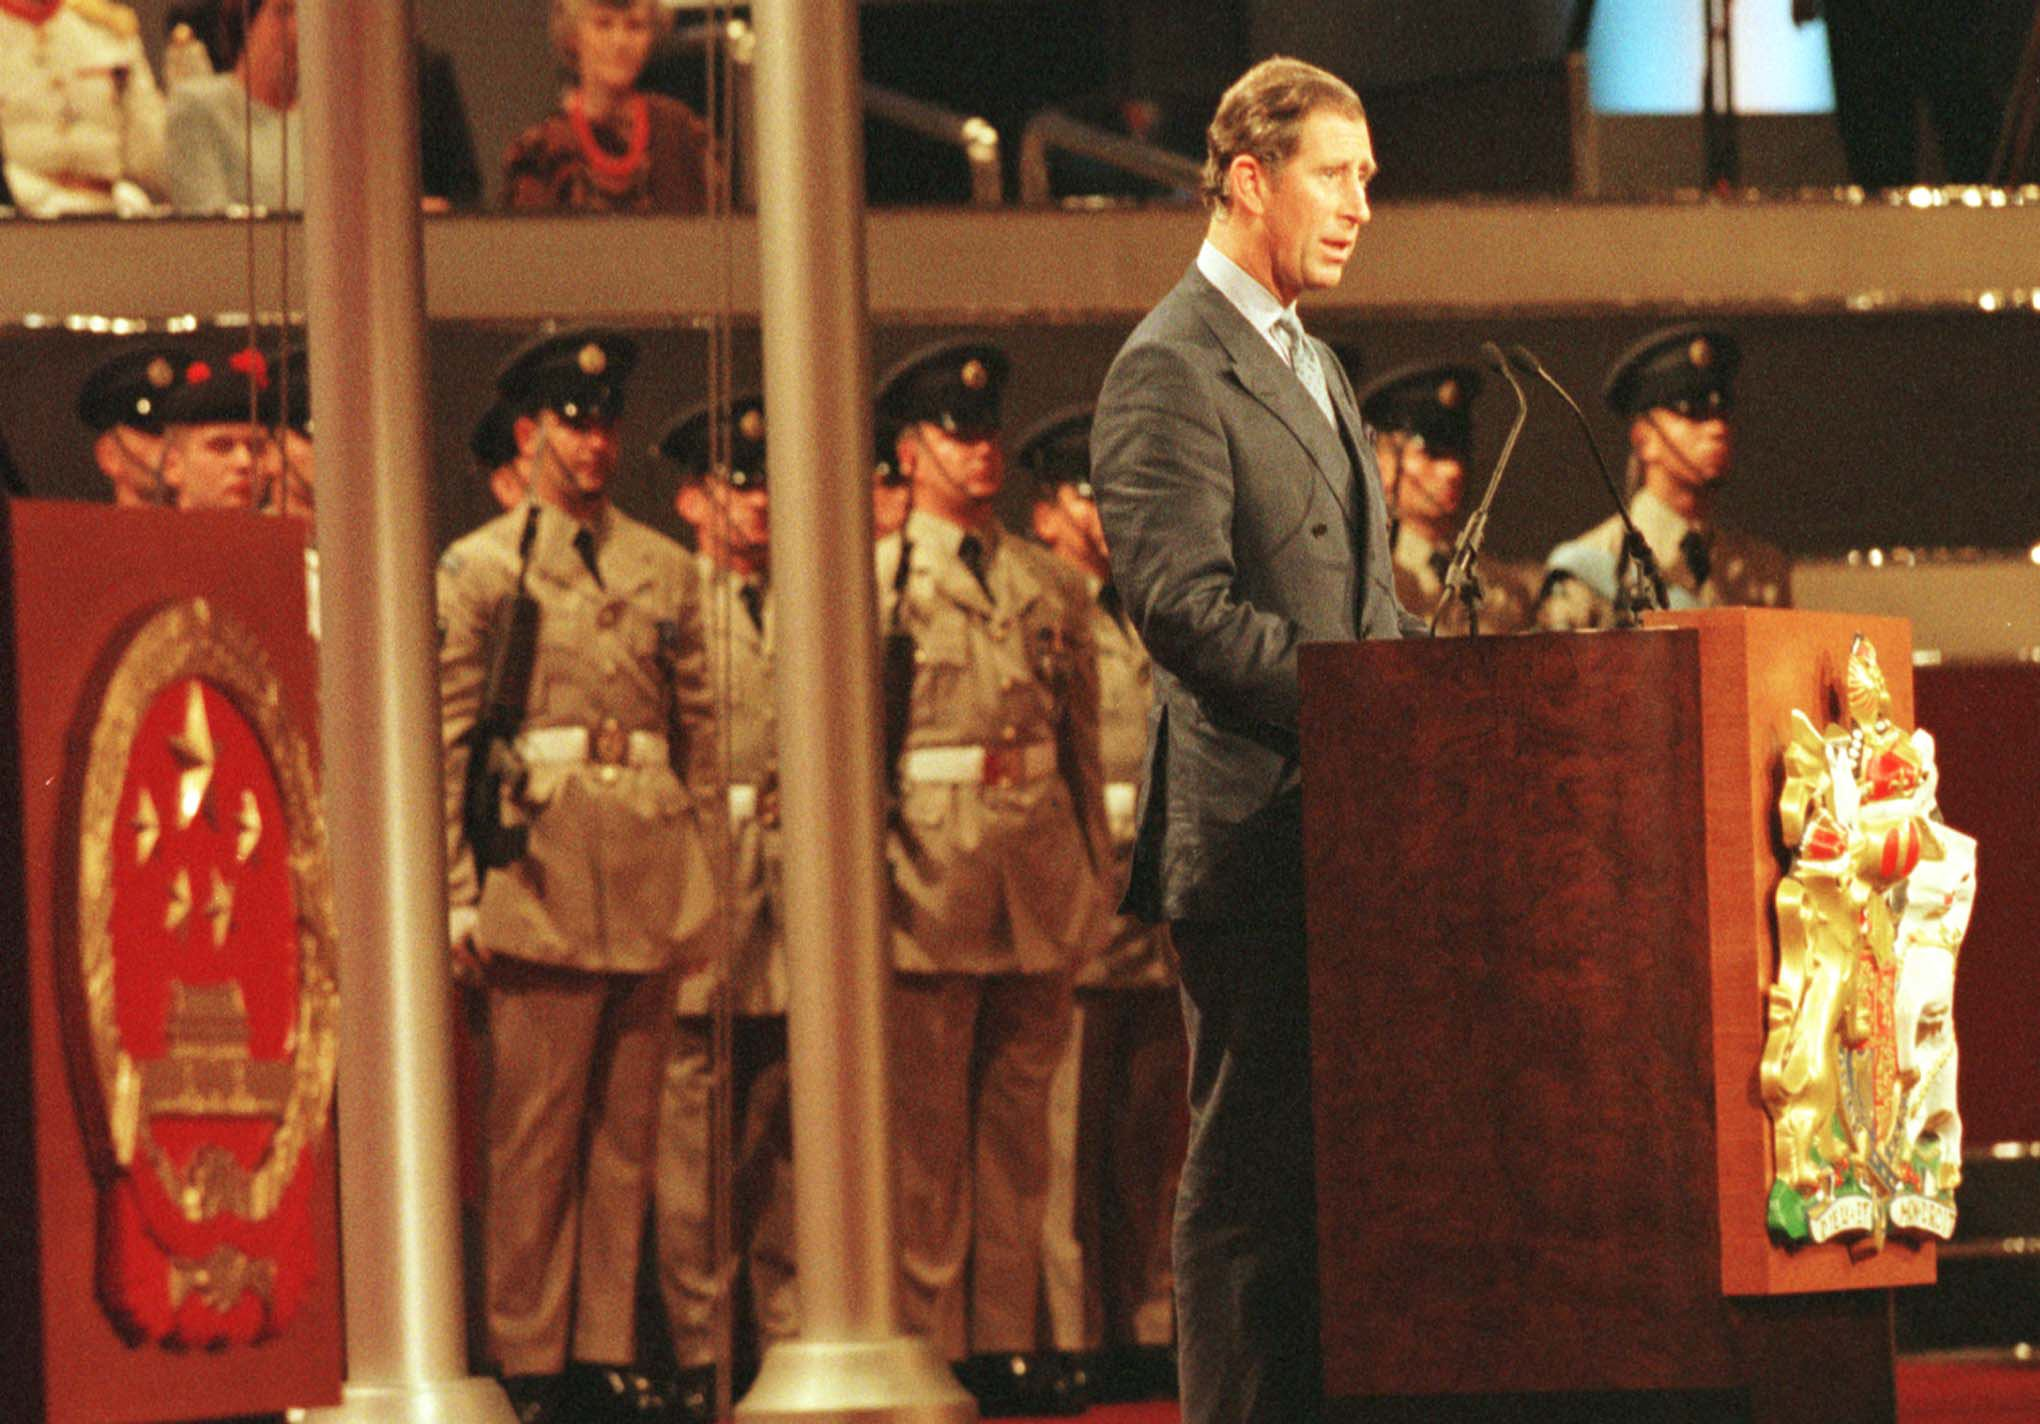 Britain's Prince of Wales delivers his speech during the ceremony commemorating the handover of Hong Kong to China on July 1, 1997.